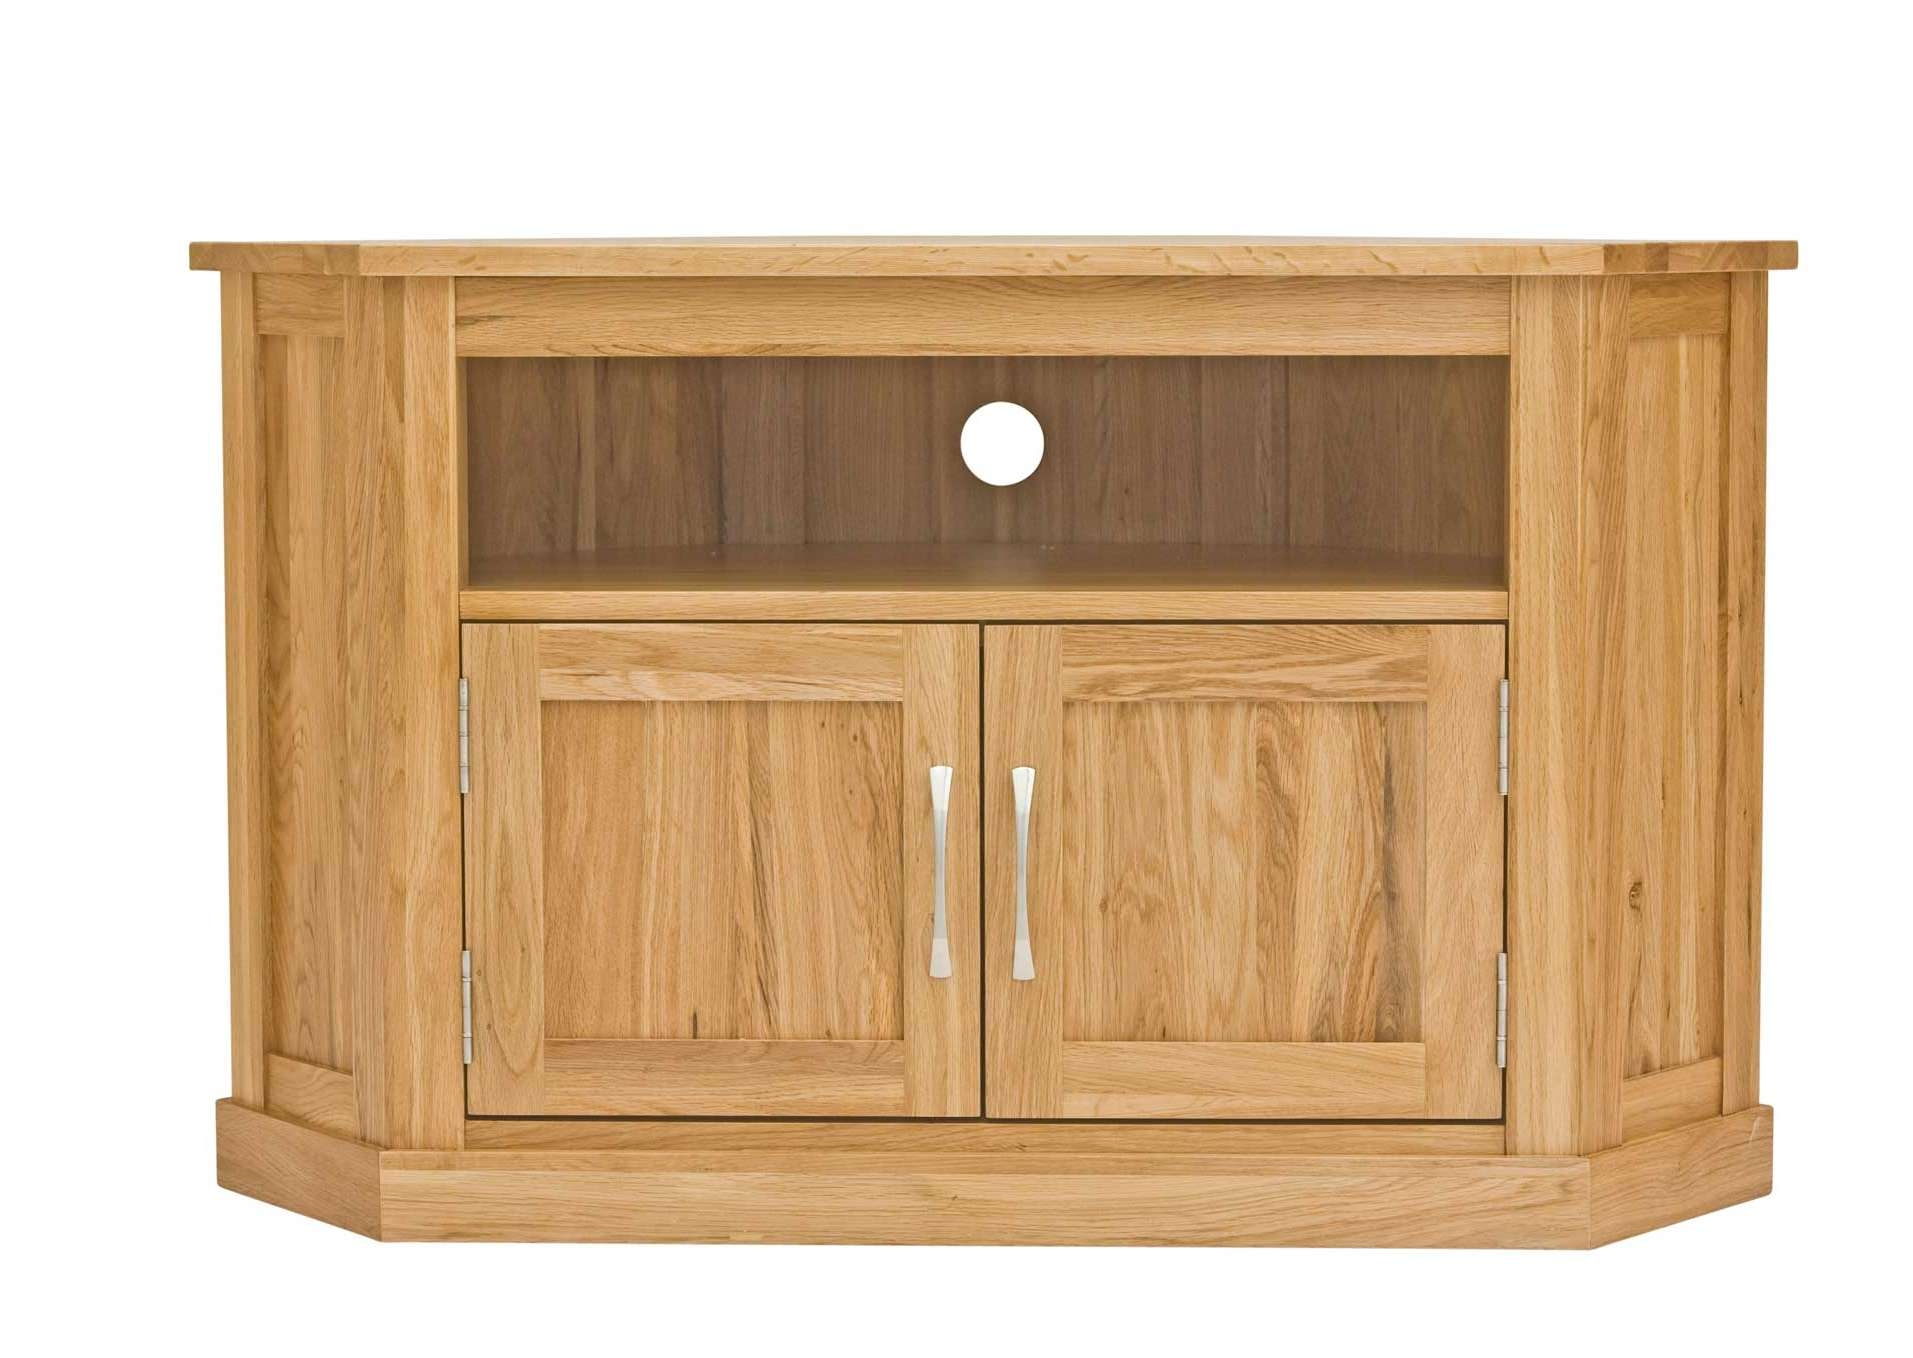 Classic Oak Corner Television Cabinet | Hampshire Furniture With Regard To Dark Wood Corner Tv Cabinets (View 3 of 20)